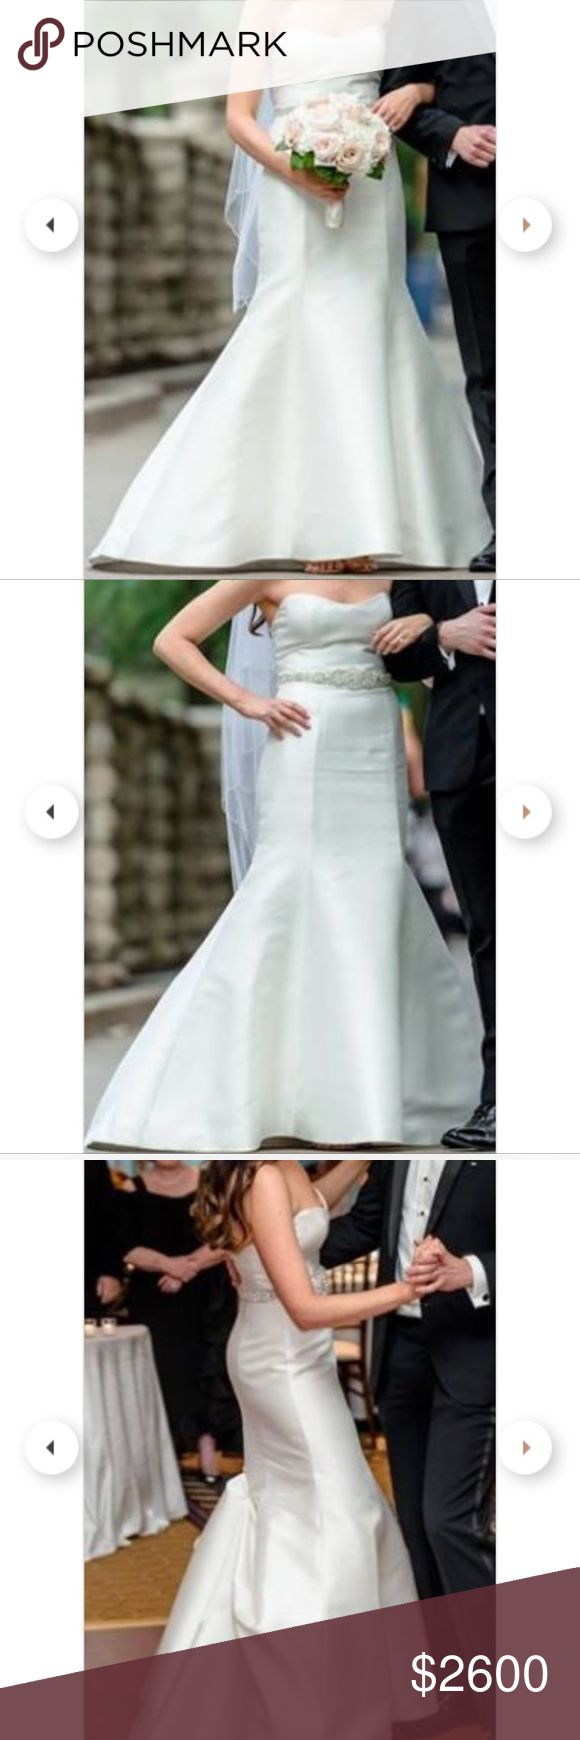 """Amsale Lenox wedding dress. Used 1x but dry cleaned by Chicago's top cleaners and in wonderful condition. Dress values $4800 + tax and comes with detached sleeves and white belt and also includes additional hand made real crystal belt made in Greece (value $990) as shown in my wedding pictures. Designer size 10 - I am 5'10"""" (5'7"""" + 3"""" heels) and 135 lbs - typically wear size 4 or 6 Amsale Dresses Wedding"""